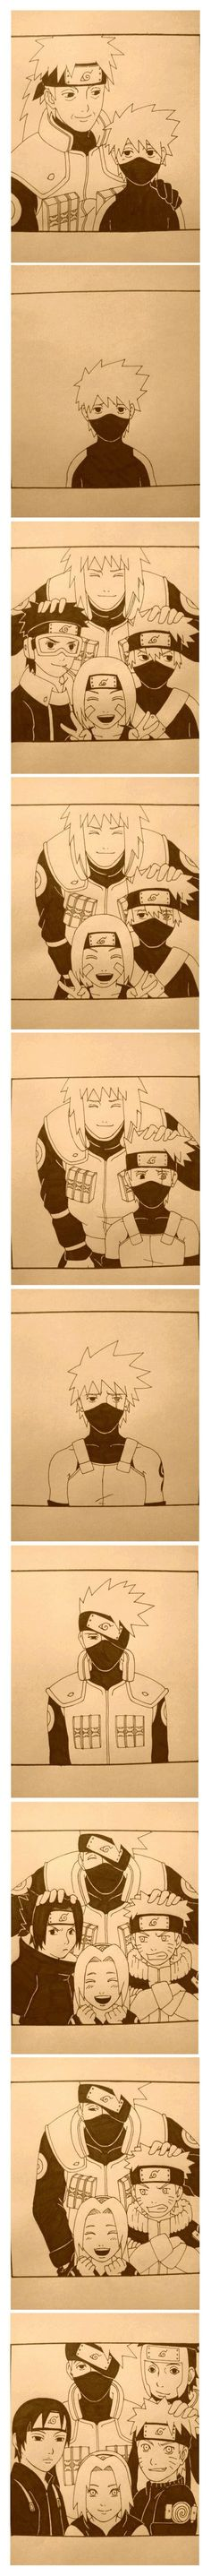 Kakashi Story, I feel so sad for him. We are here for you Kakashi -Every Kakashi Fangirl Ever Kakashi Hatake, Gaara, Naruto Cute, Naruto Shippuden Anime, Naruto Funny, Sarada Uchiha, Naruto Gaiden, Itachi, Manga Anime